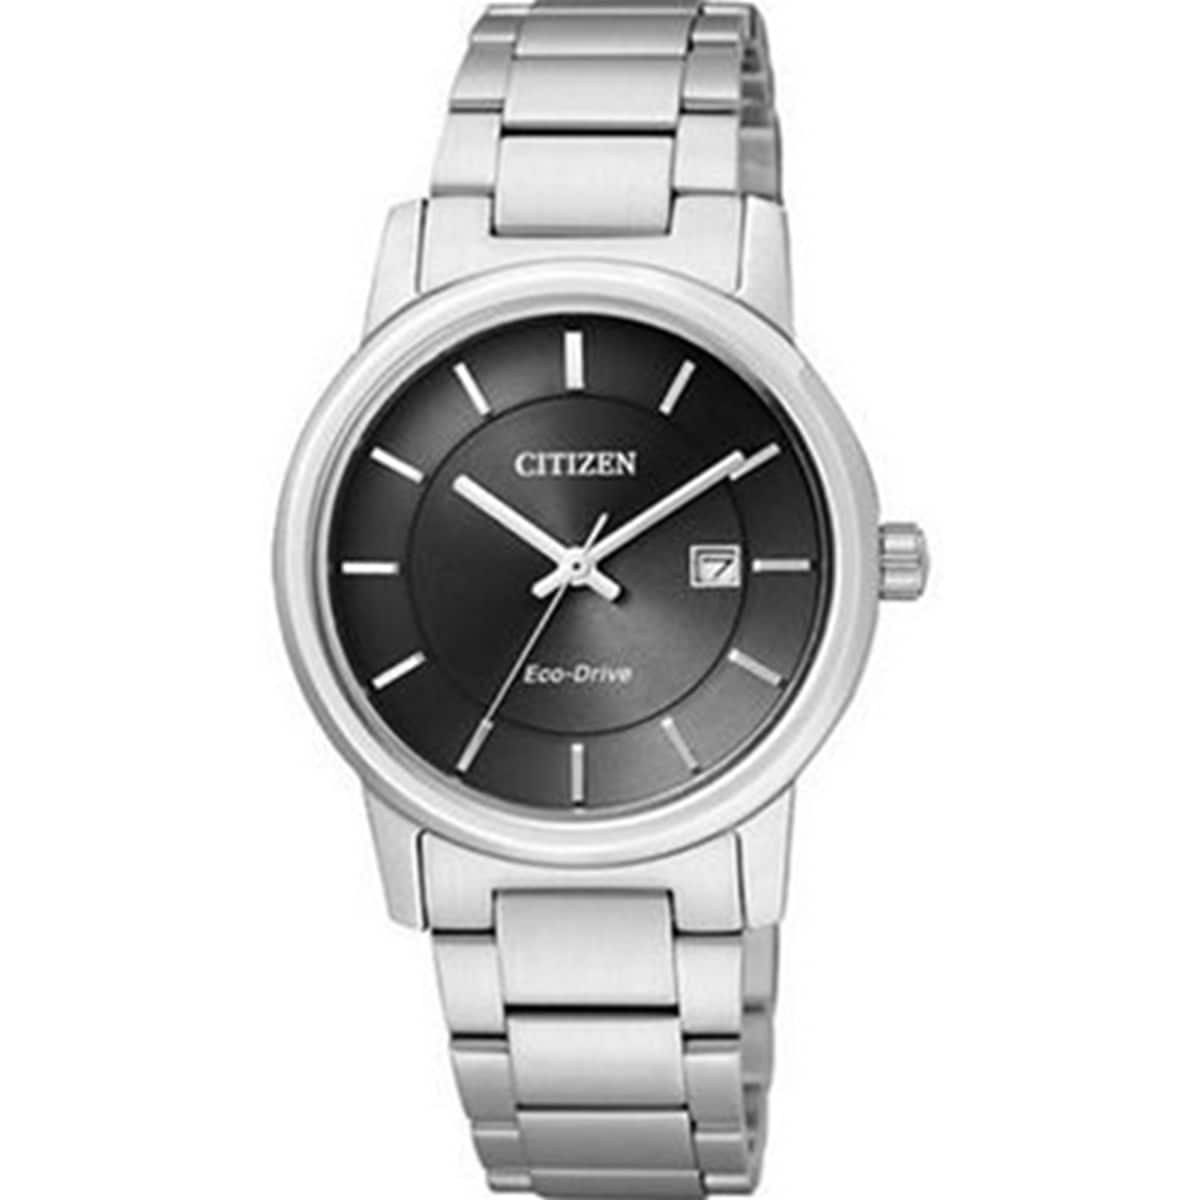 Citizen Women's Eco-Drive EW1560-57E Silvertone Stainless Steel Eco-Drive Watch with Black Dial